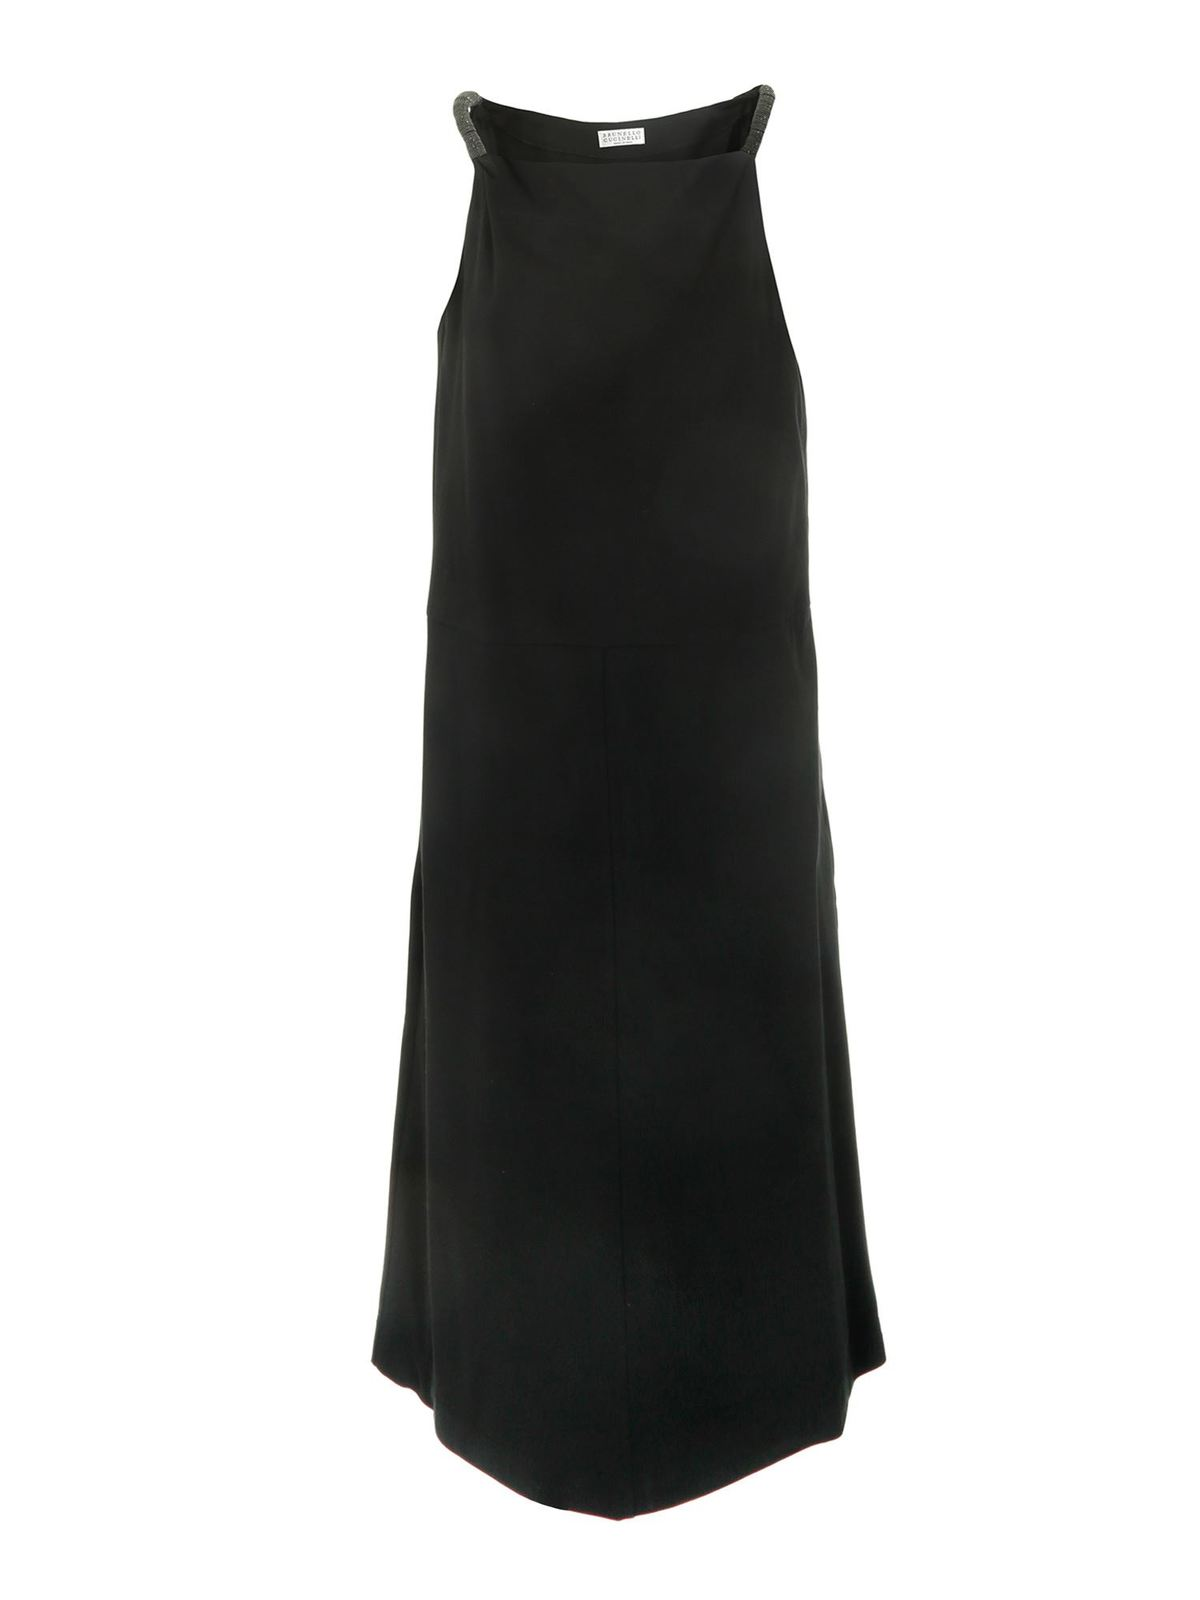 Brunello Cucinelli Cottons HIGHLIGHTS DETAILED DRESS IN BLACK